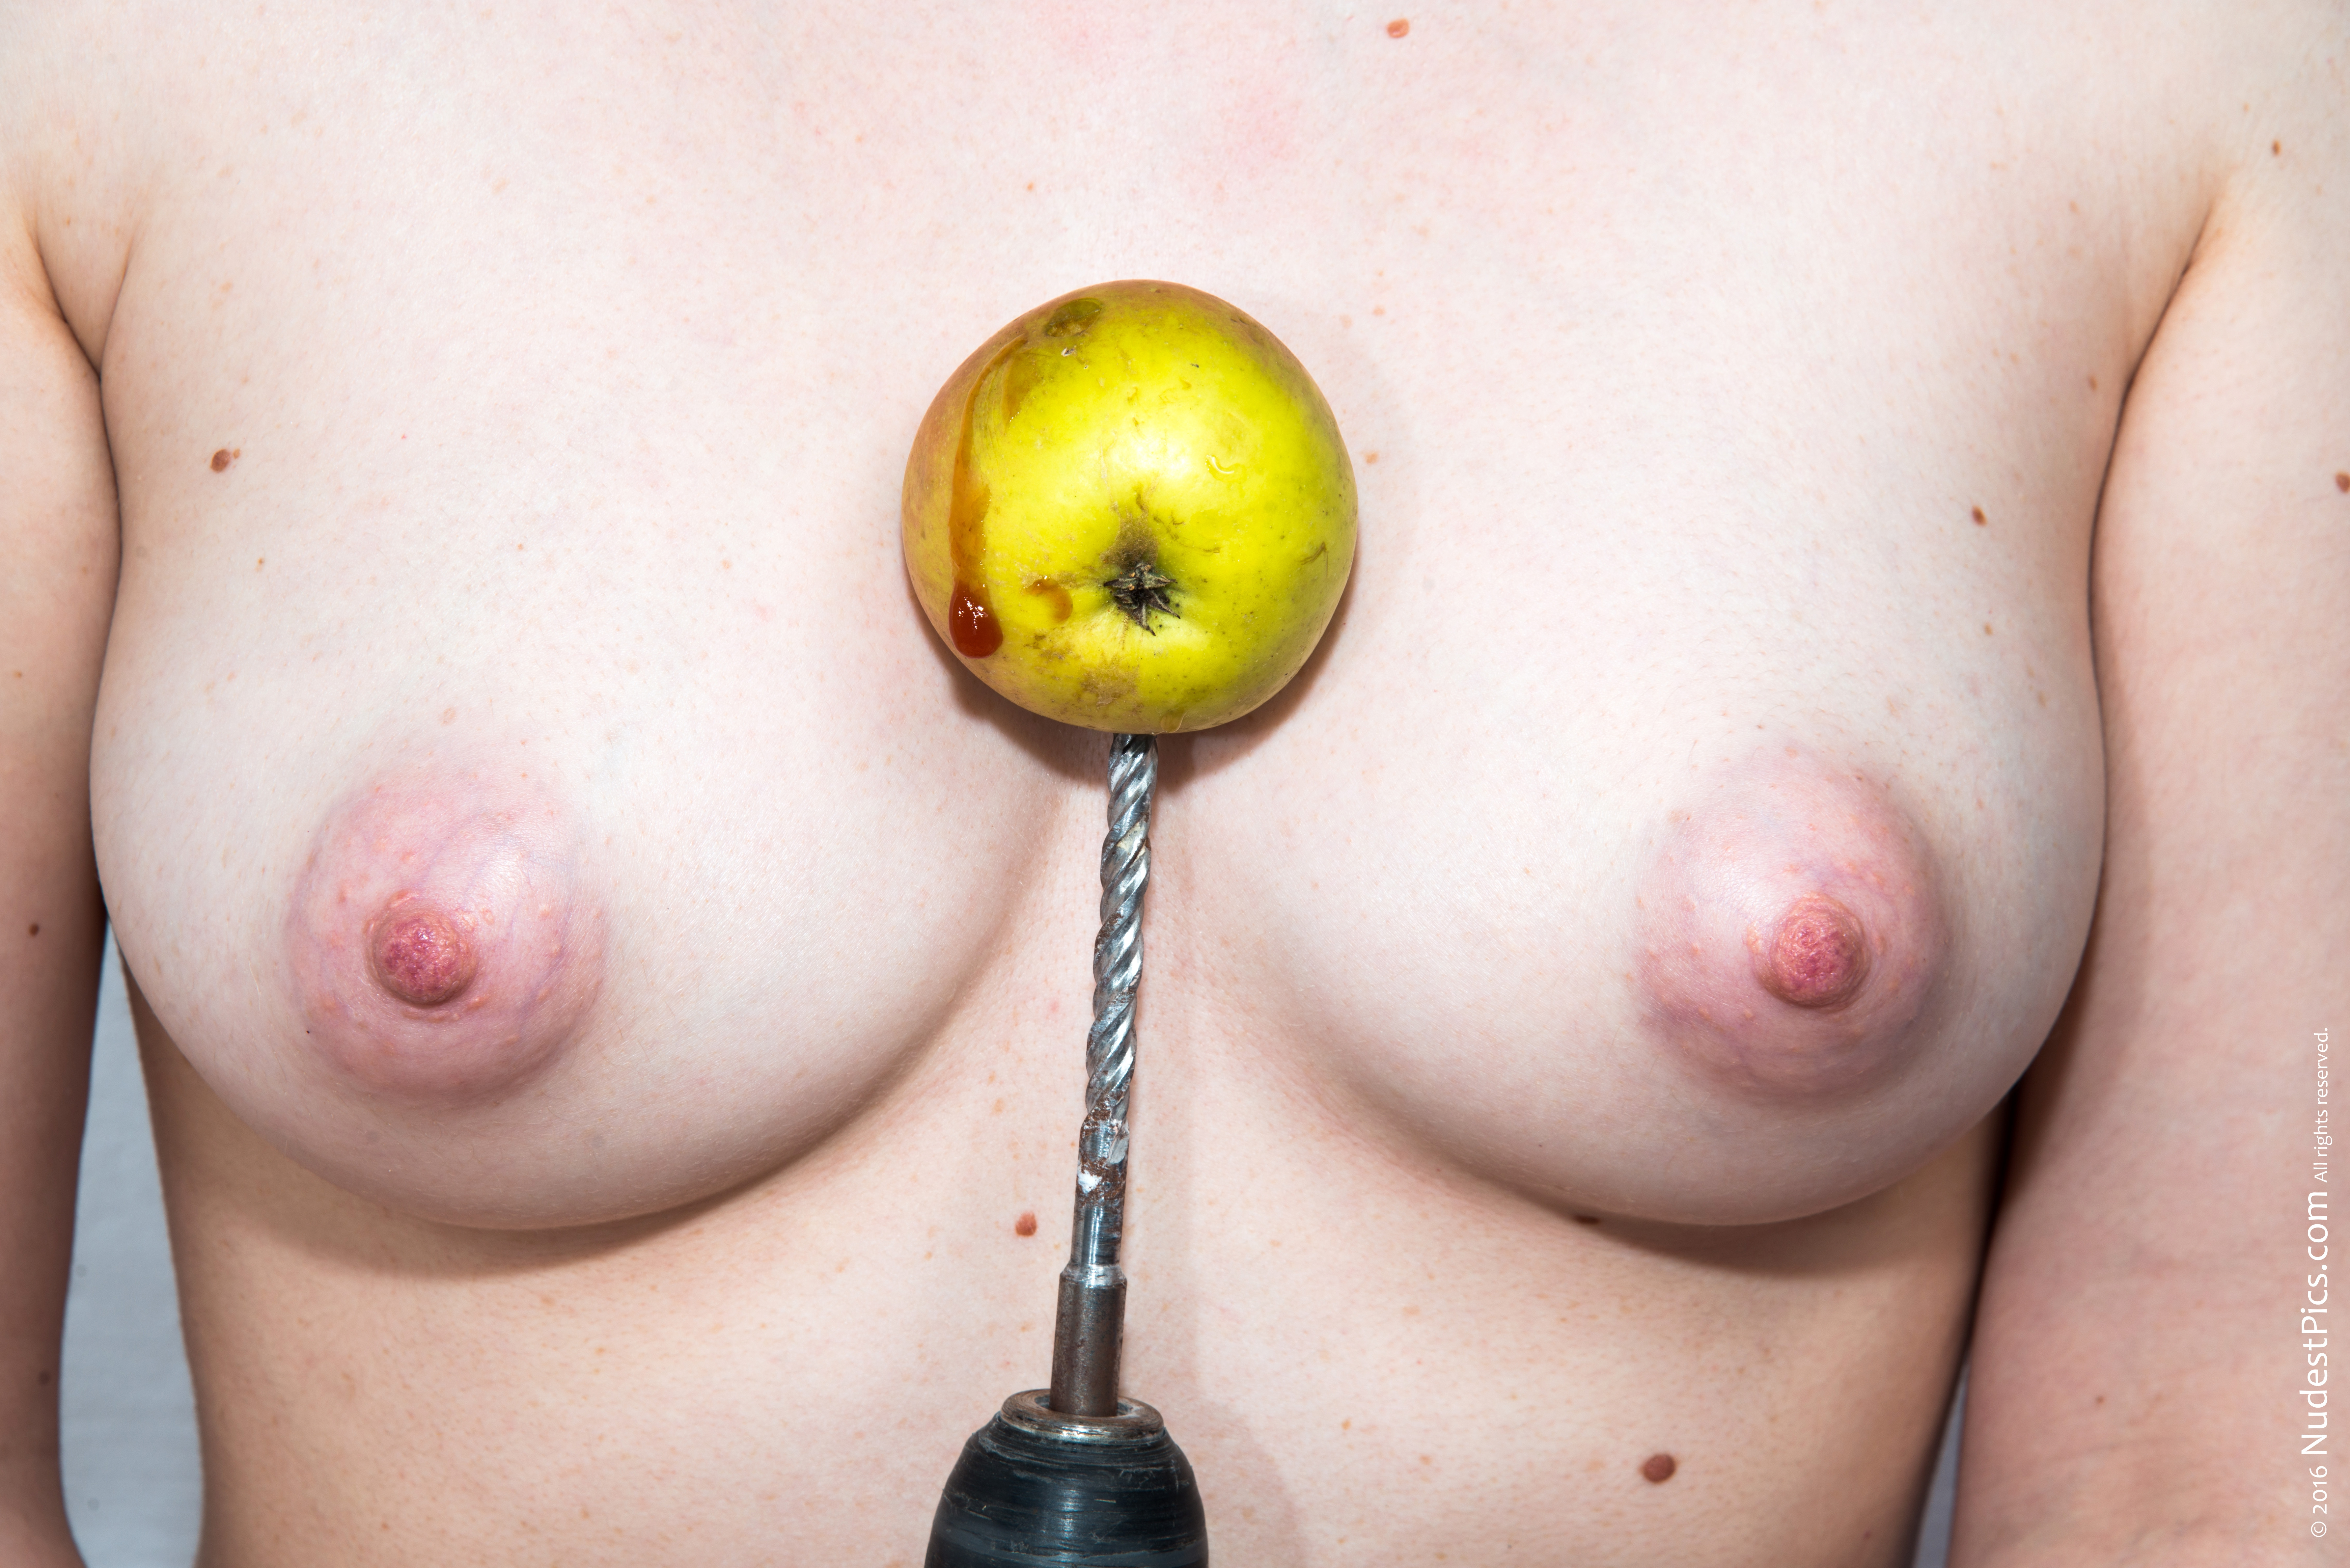 Killing an Apple on Breasts